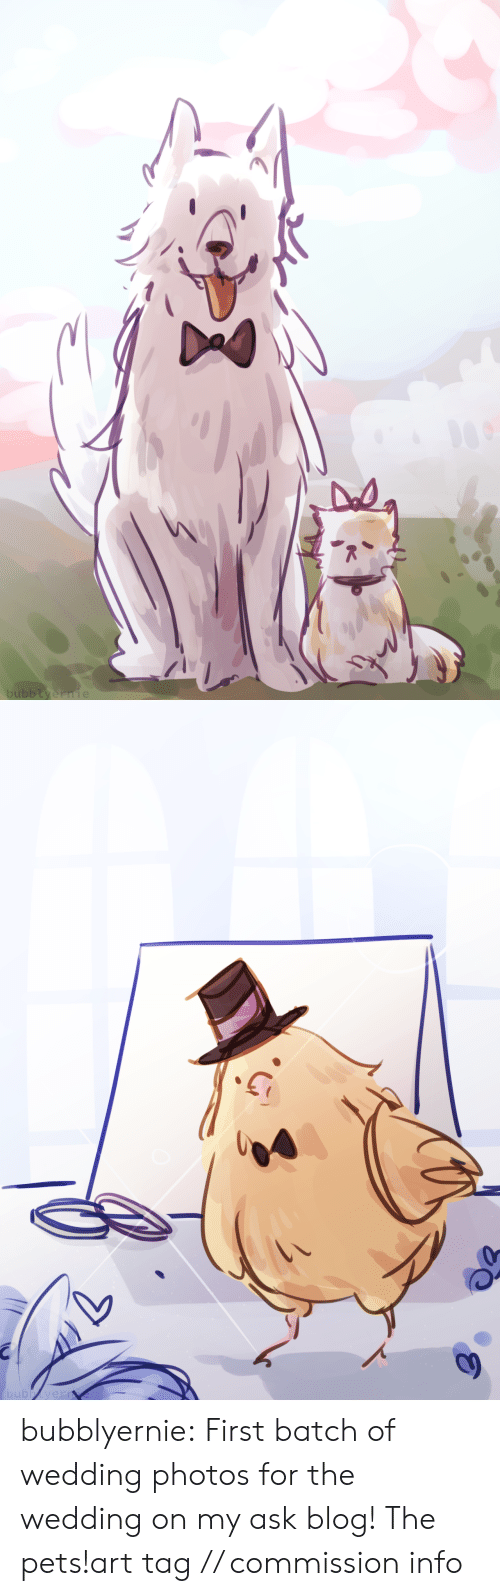 Target, Tumblr, and Blog: bubblyernie   bubbyern bubblyernie:  First batch of wedding photos for the wedding on my ask blog! The pets!art tag // commission info